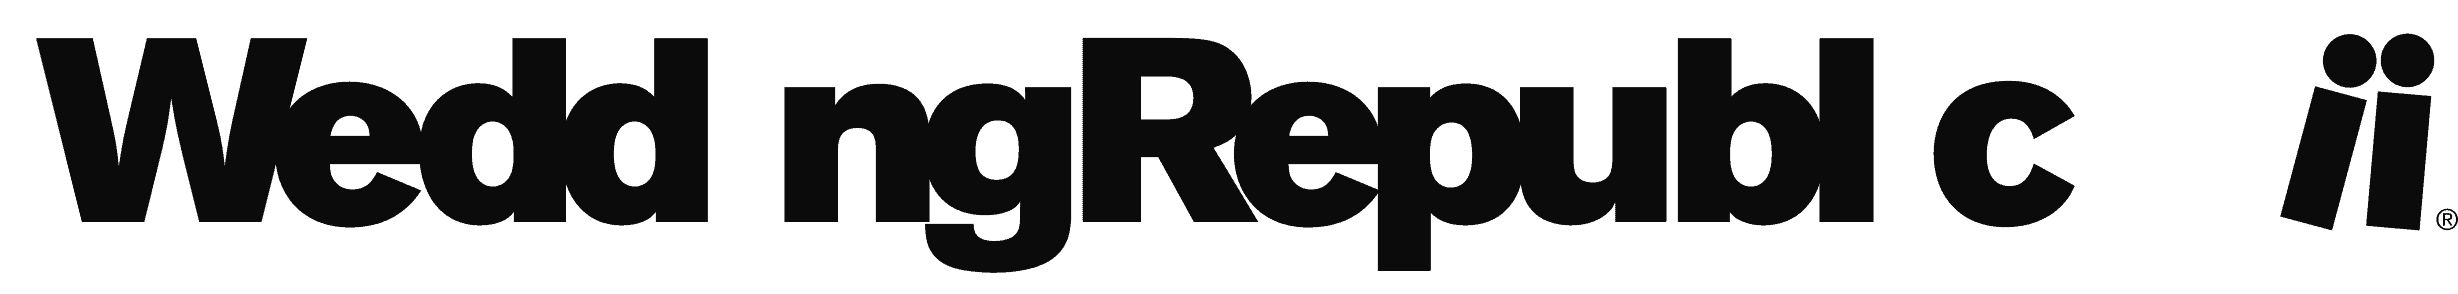 wr-logo-transparent